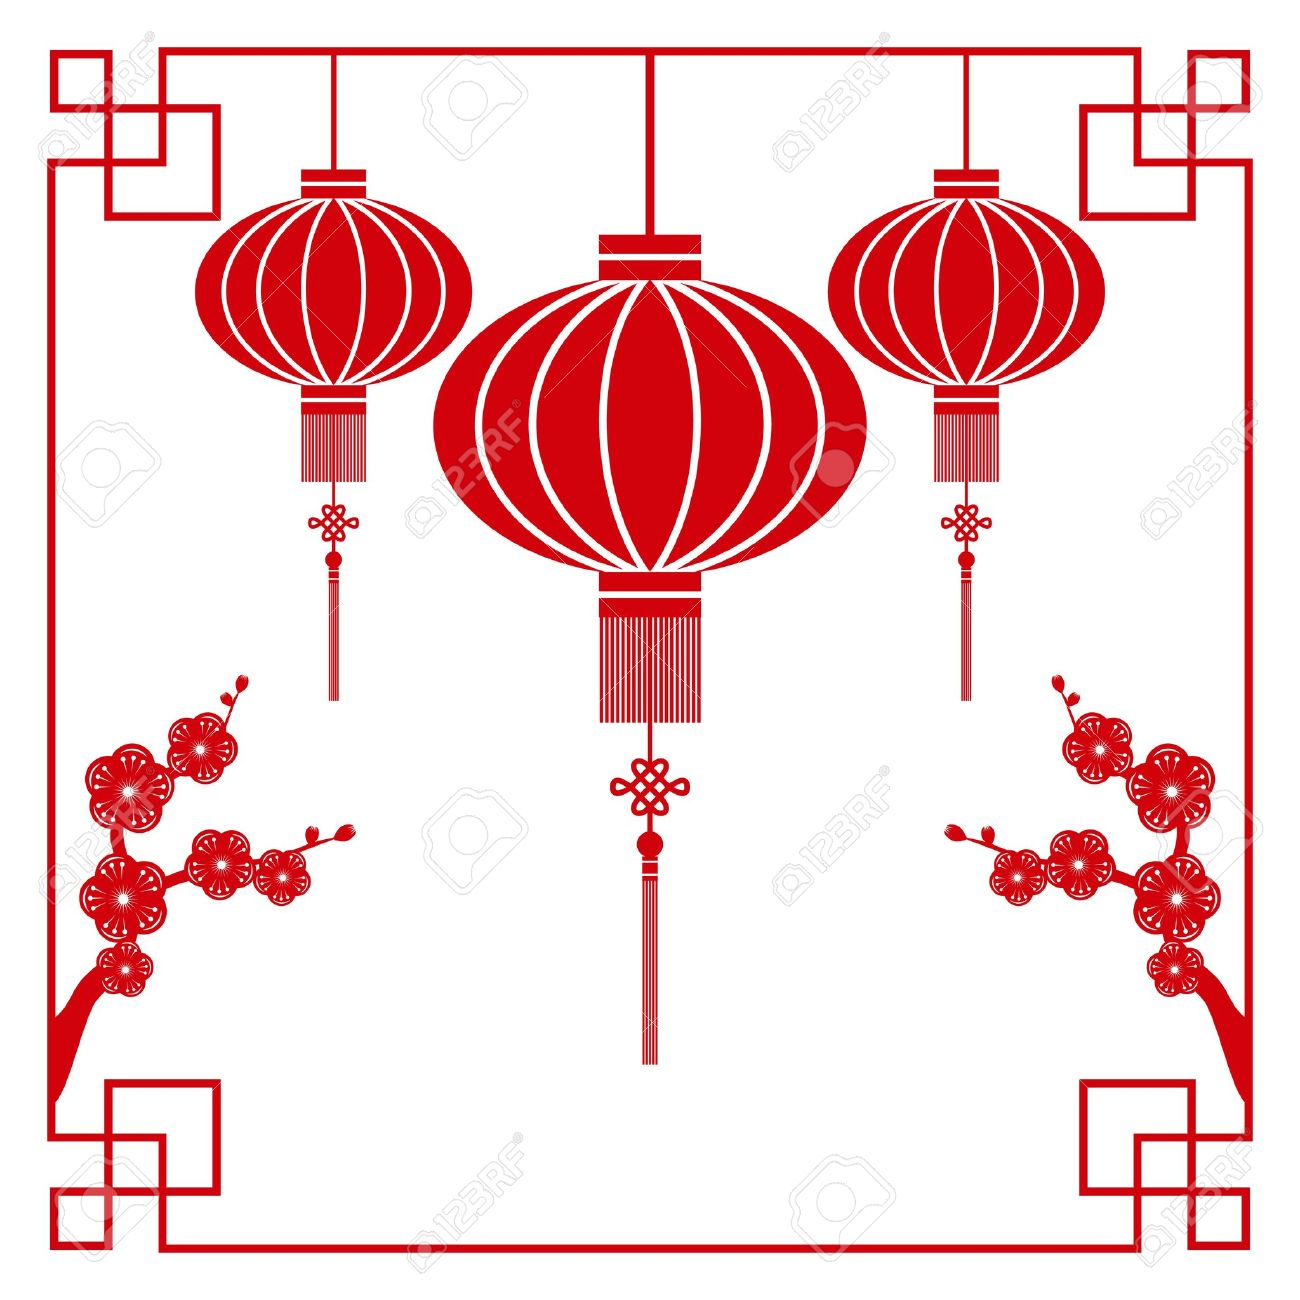 Image result for image chinese lantern festival drawing